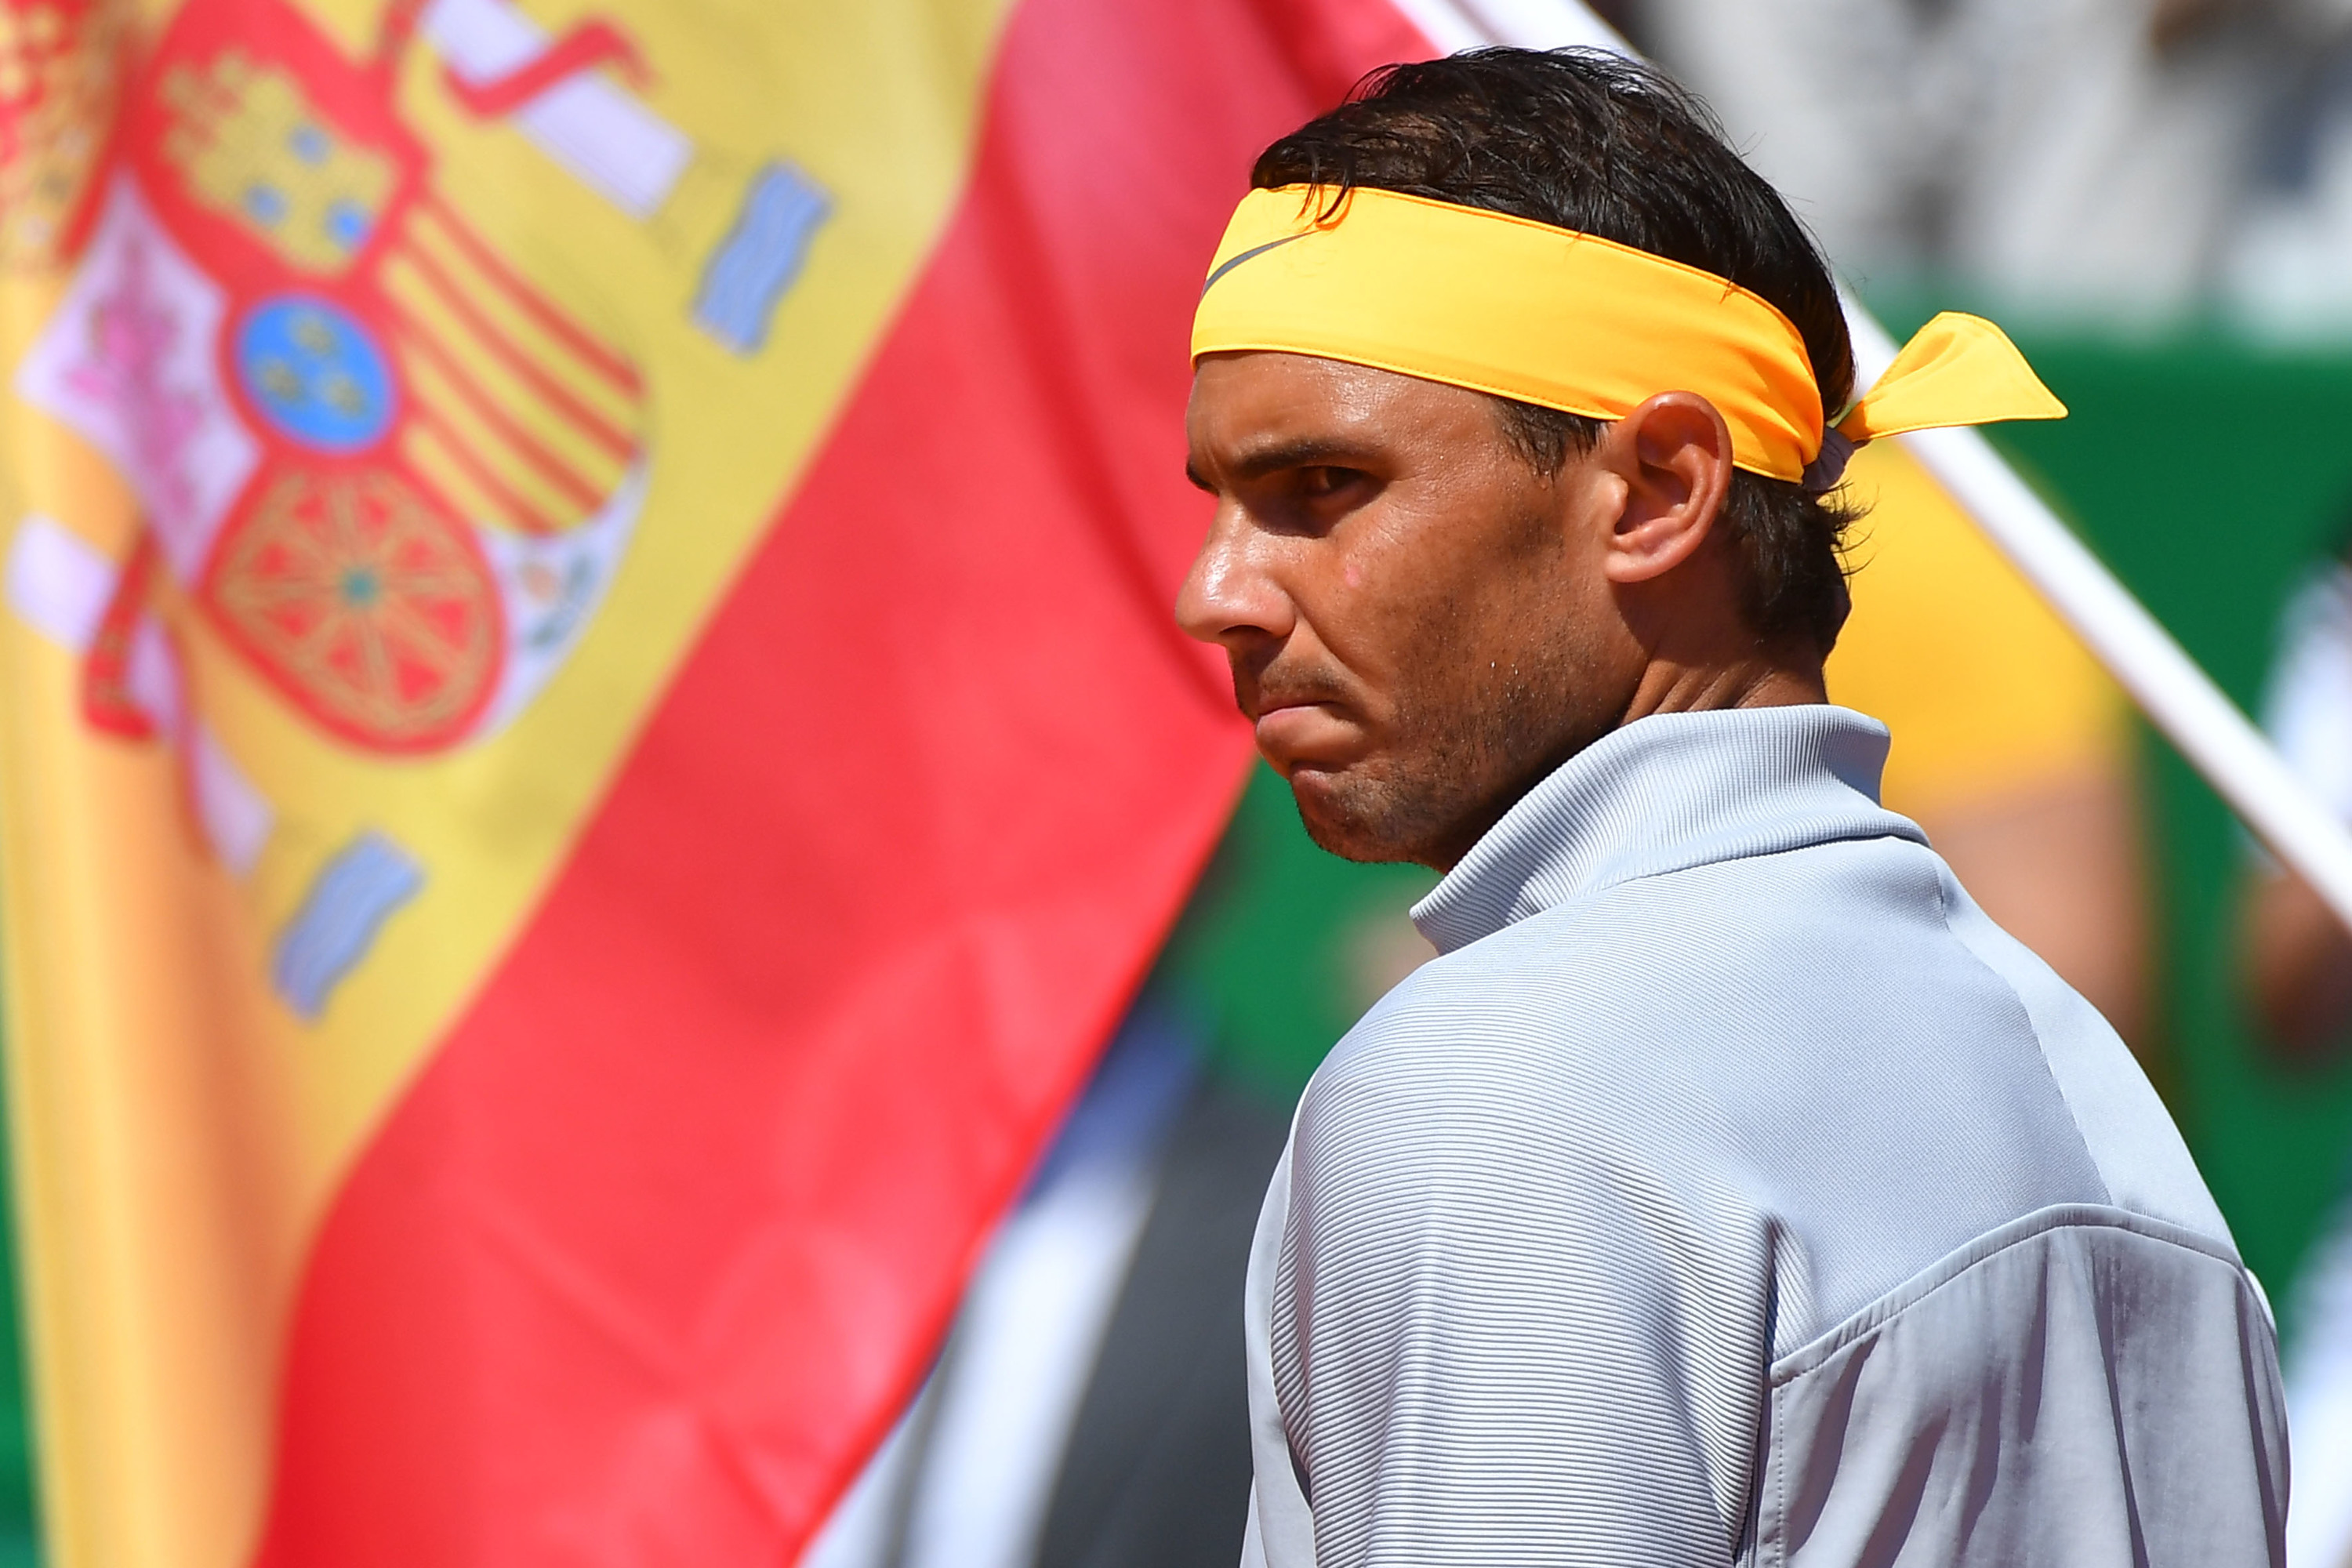 Rafael Nadal in front of the Spanish flag during Monte-Carlo 2018